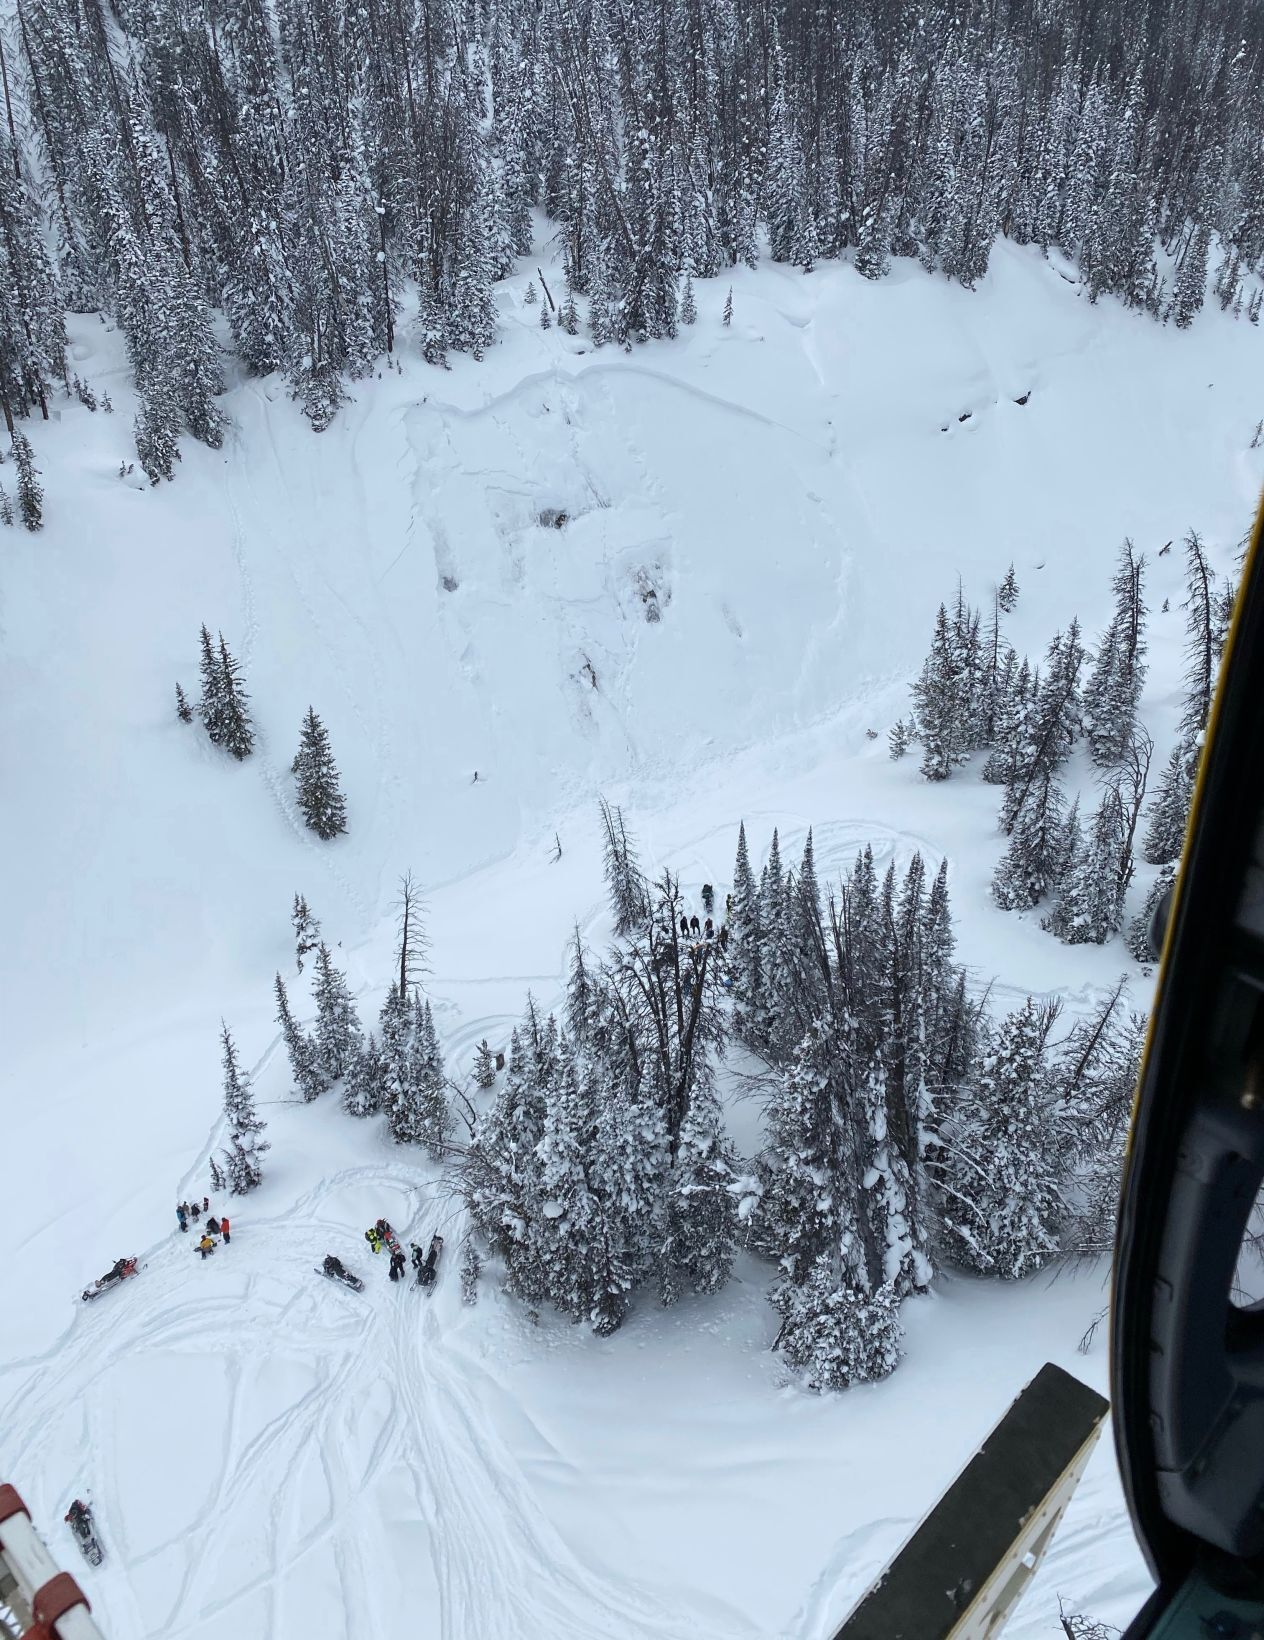 Mike McKelvey Avalanche - Togwotee Pass - Jackson, Wyoming - Teton County Search and Rescue